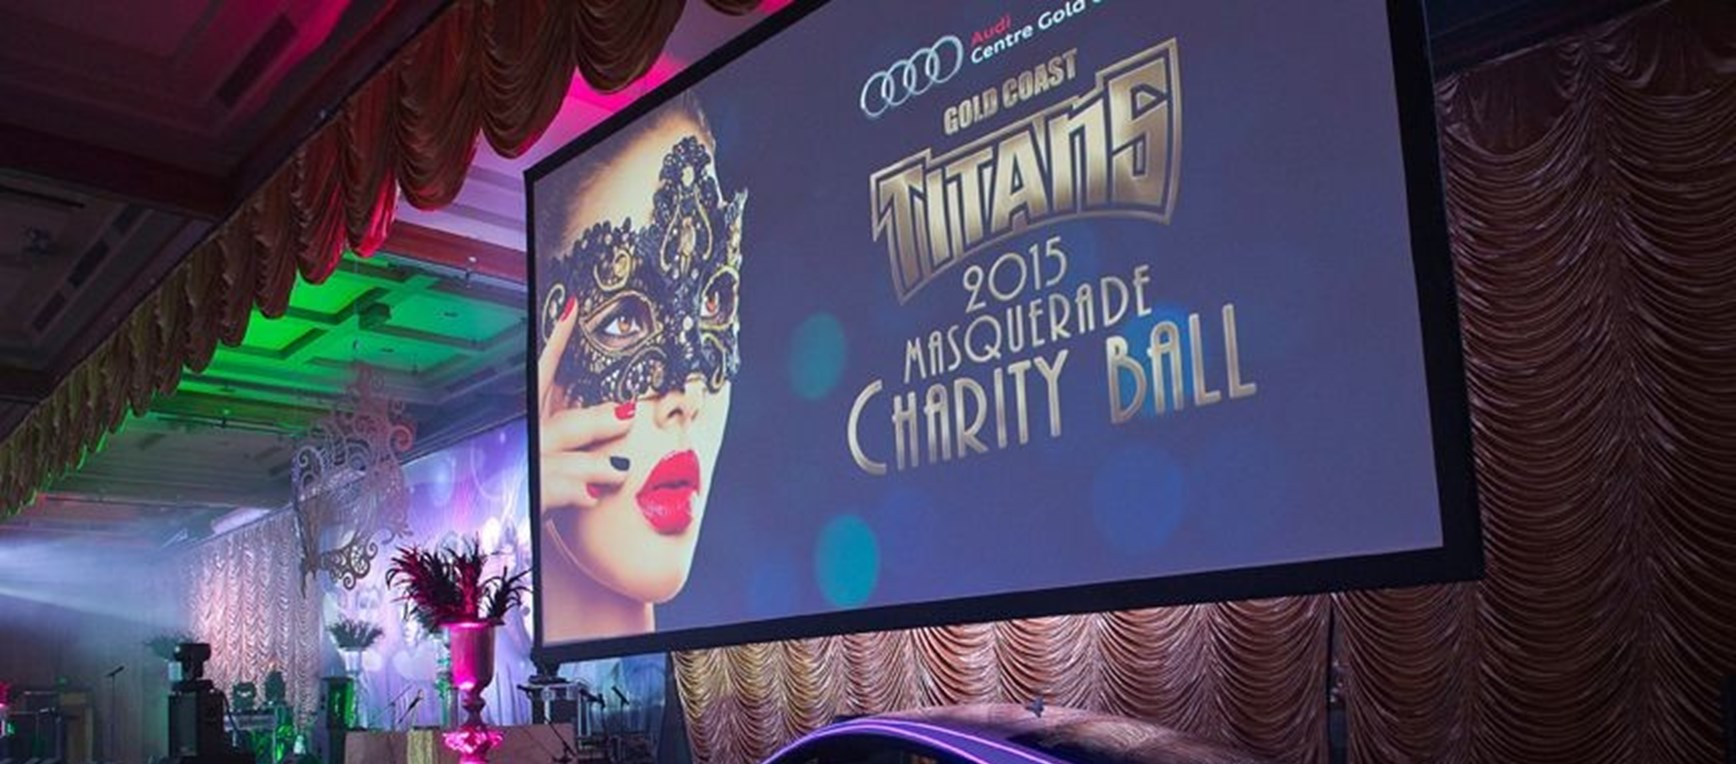 2015 Charity Ball Gallery